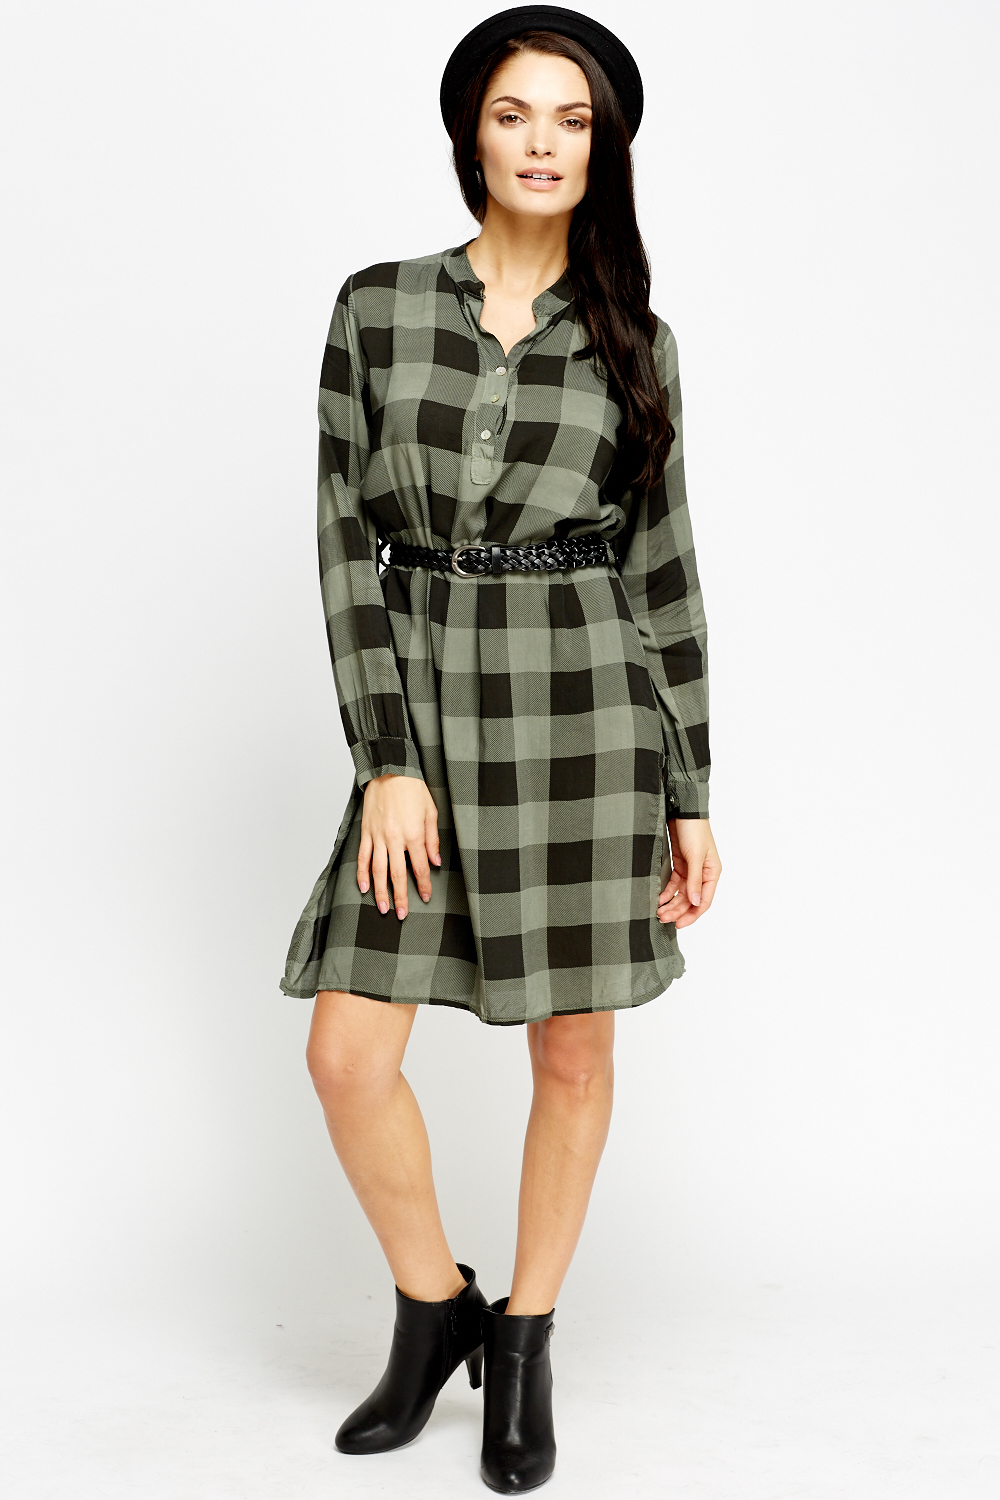 Double shirt dress design - Double Tap To Zoom